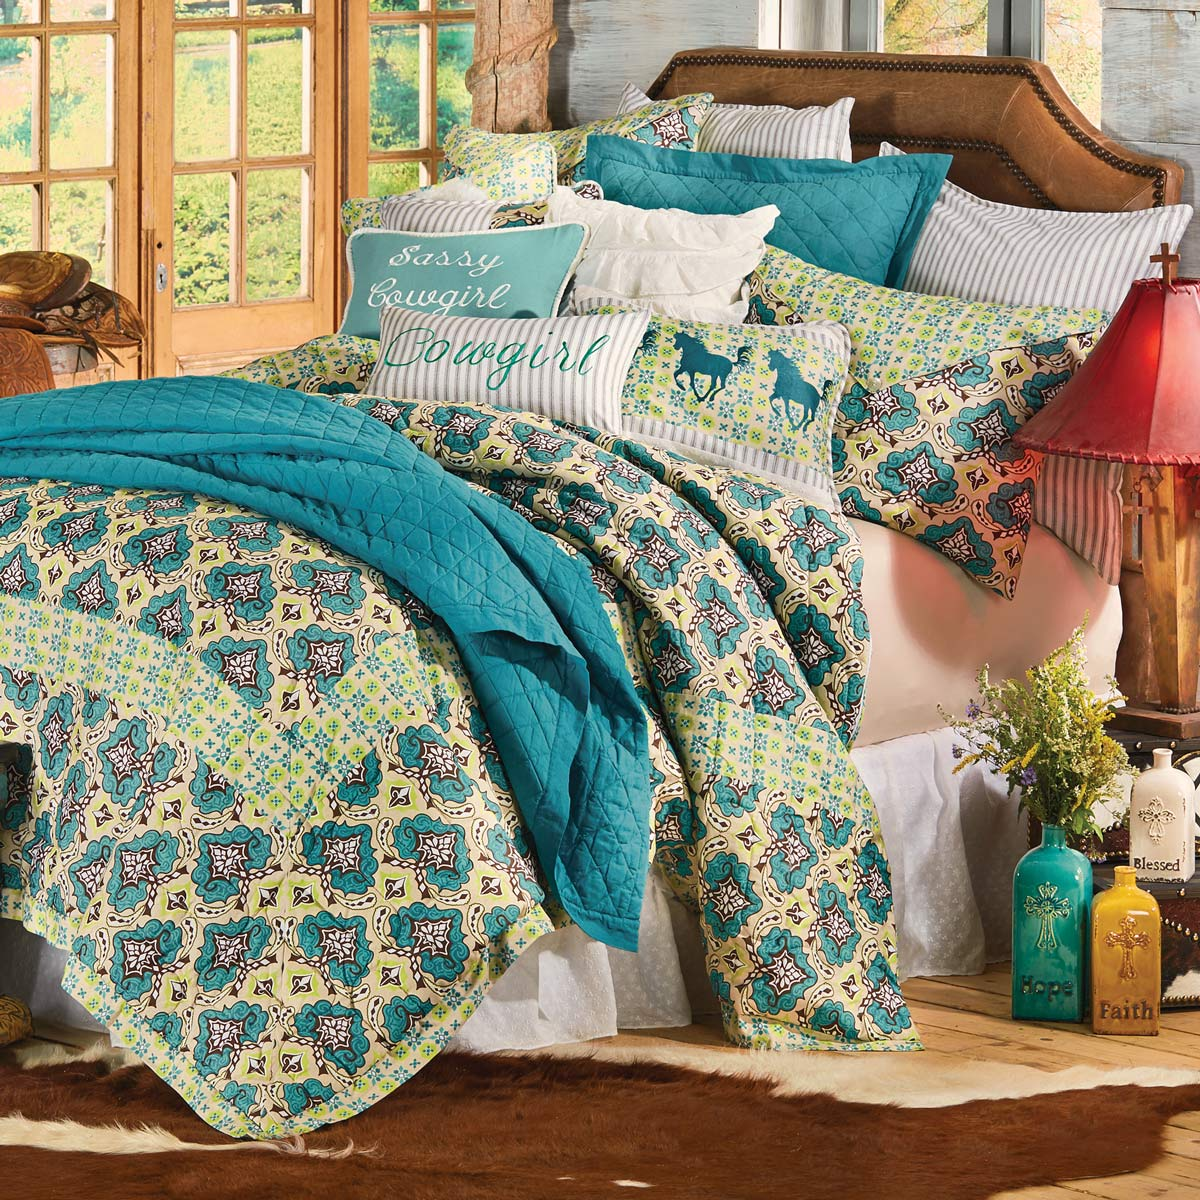 Black Forest Decor Western spring quilt bed set - twin